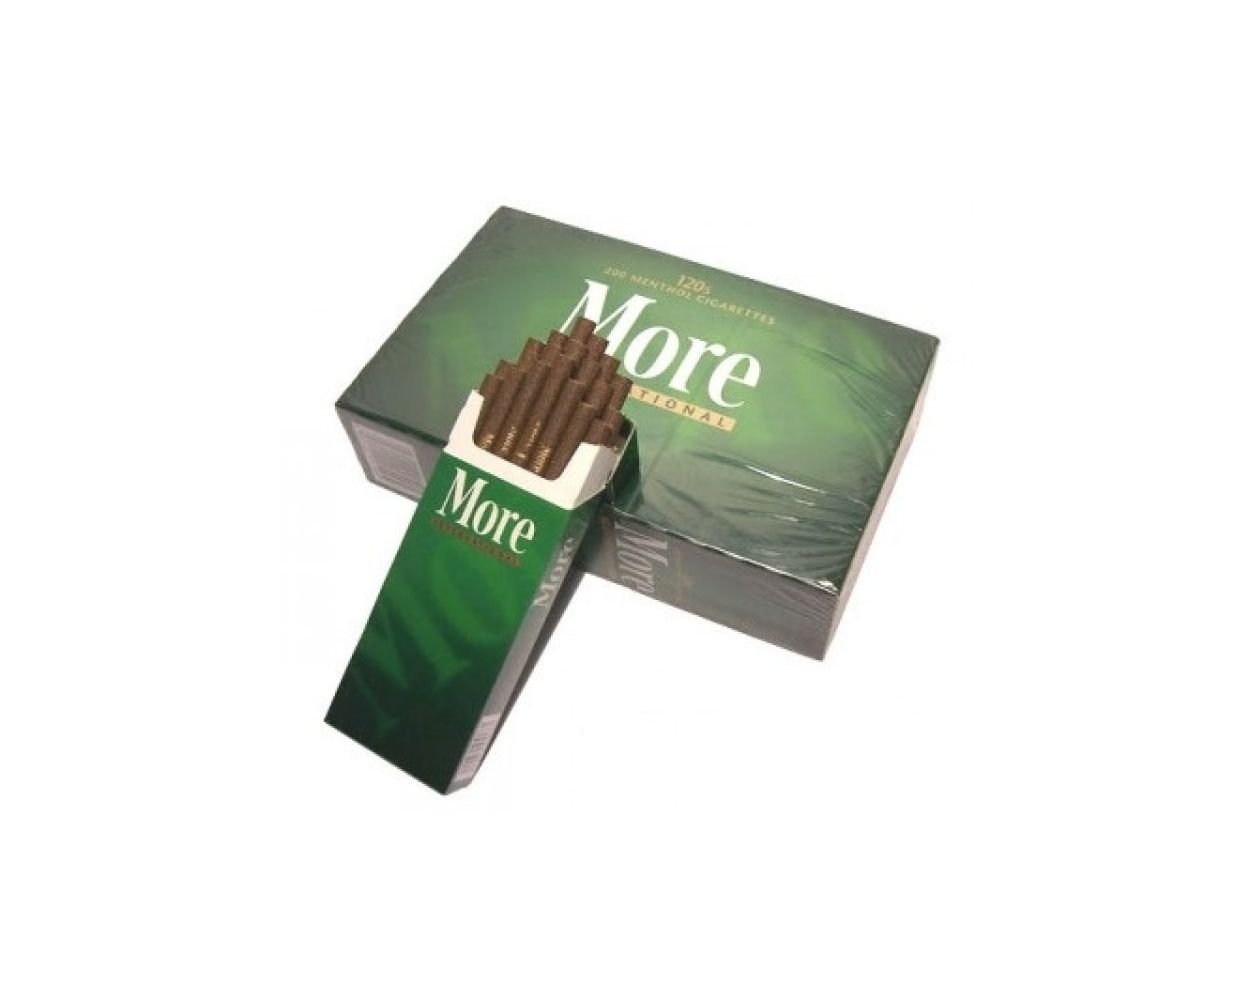 Menthol cigarettes price in pakistan westminster 85 cigarettes cheaper